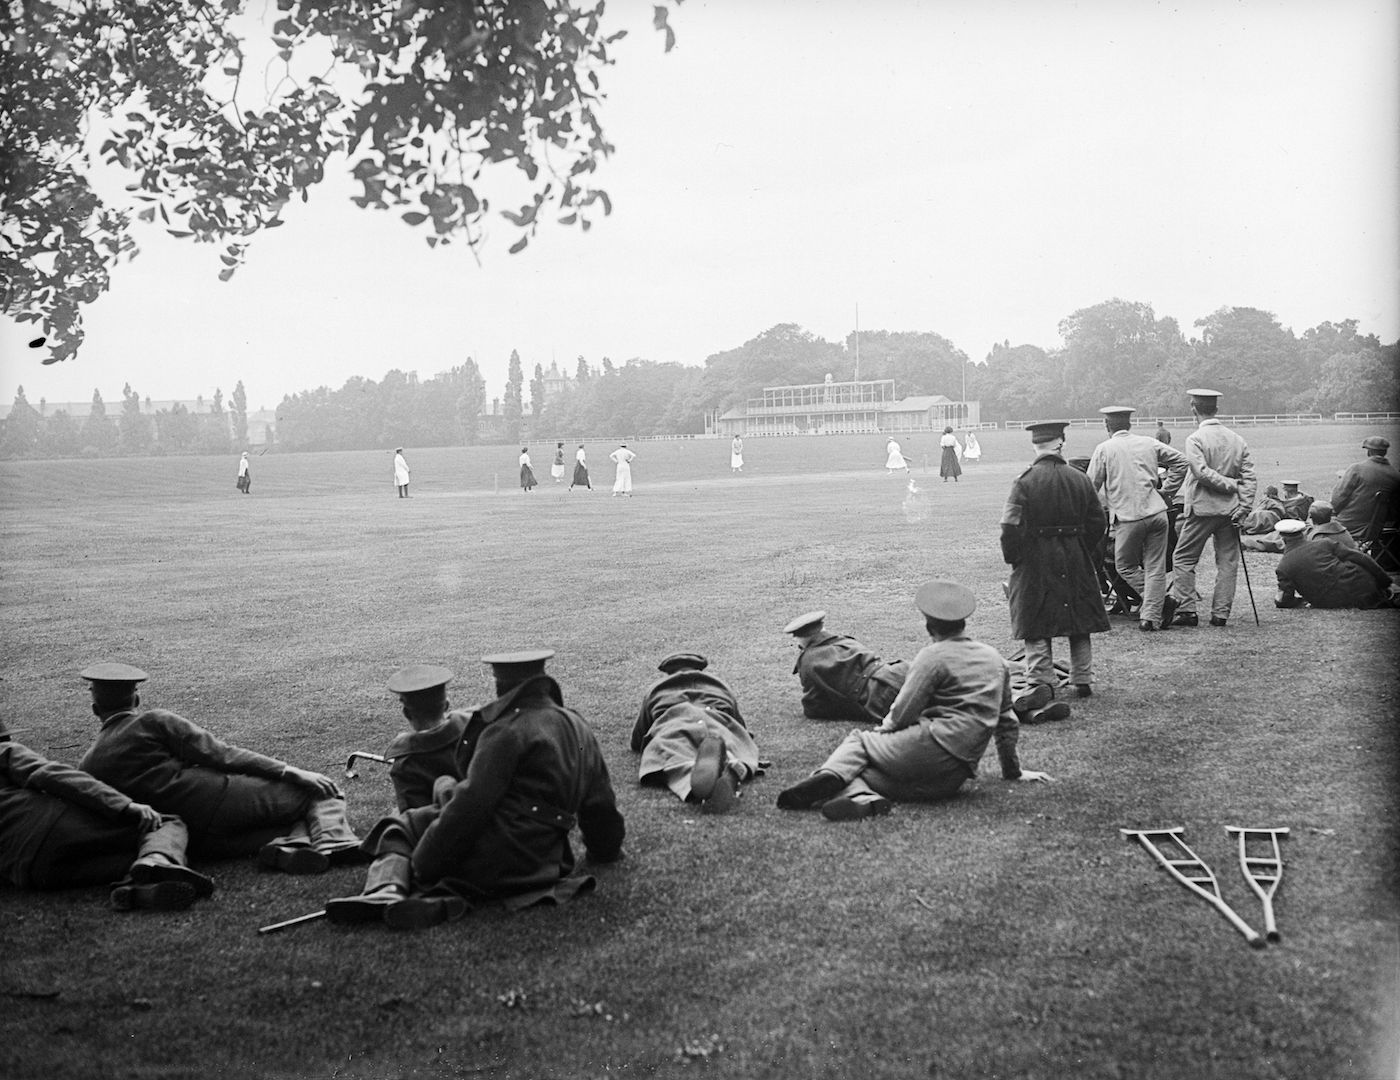 Convalescing soldiers watch a ladies' cricket match at Hurlingham Park in London, in 1917